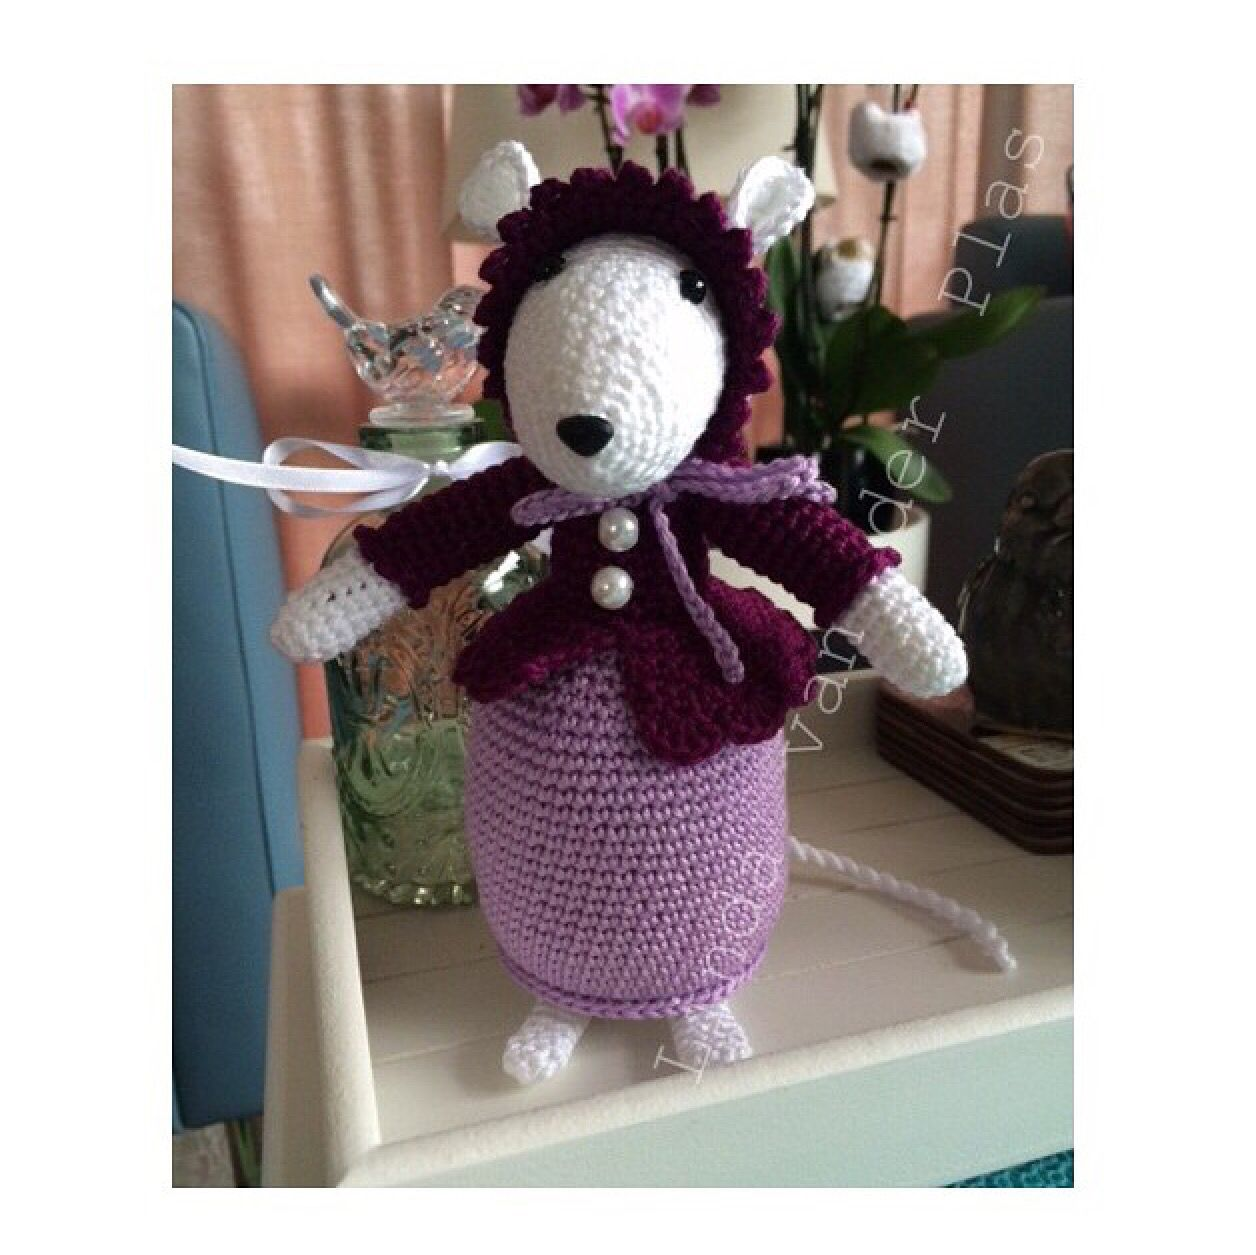 Madison Mouse....She's lovely Pattern;Made with love by Antoinette